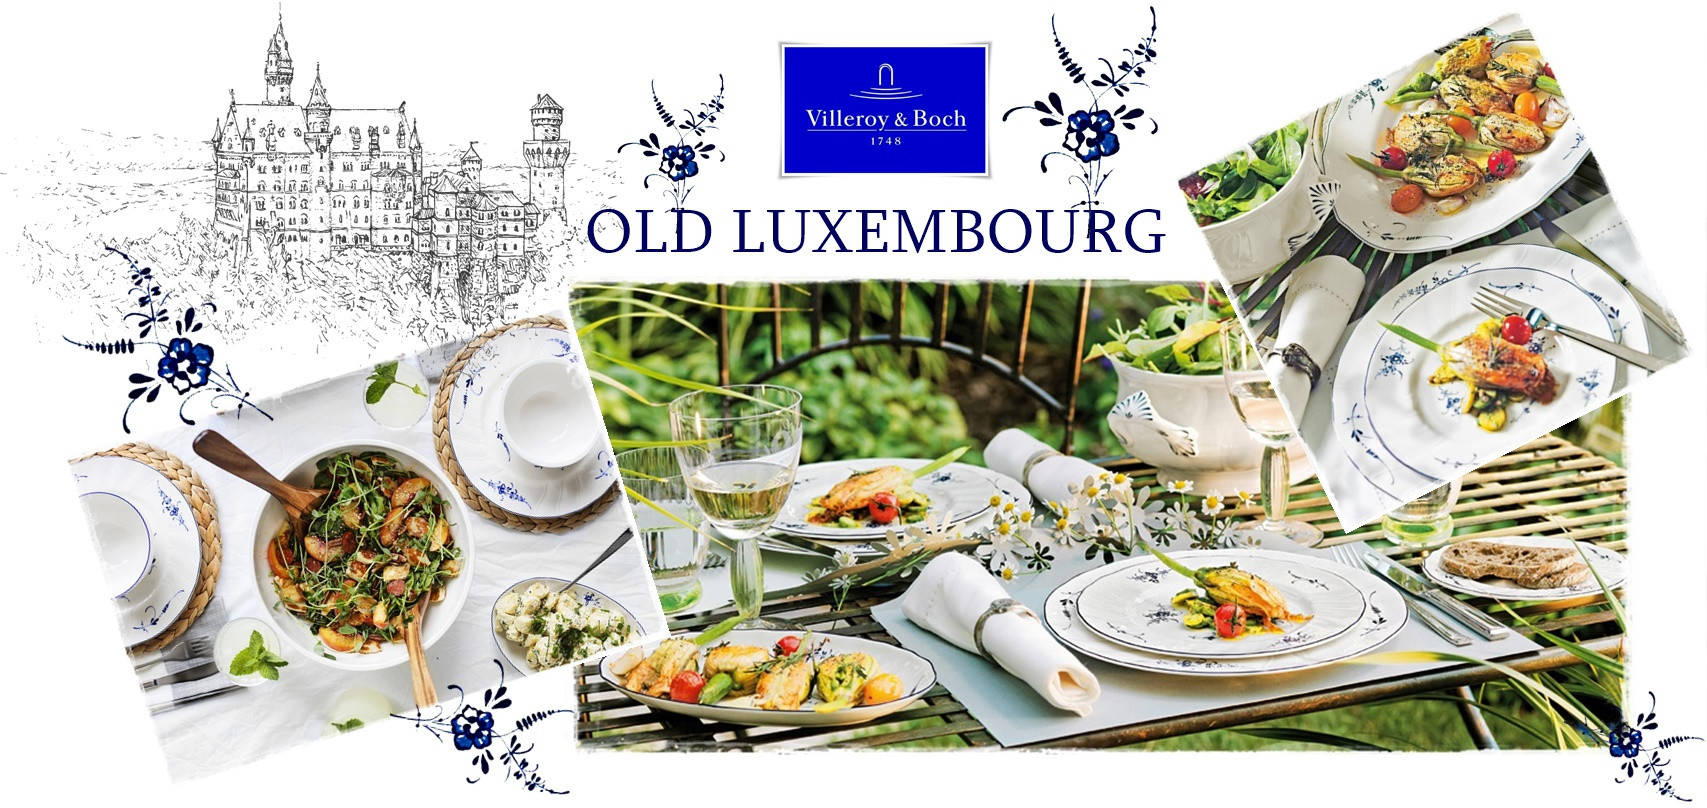 Villeroy&Boch OLD LUXEMBOURG